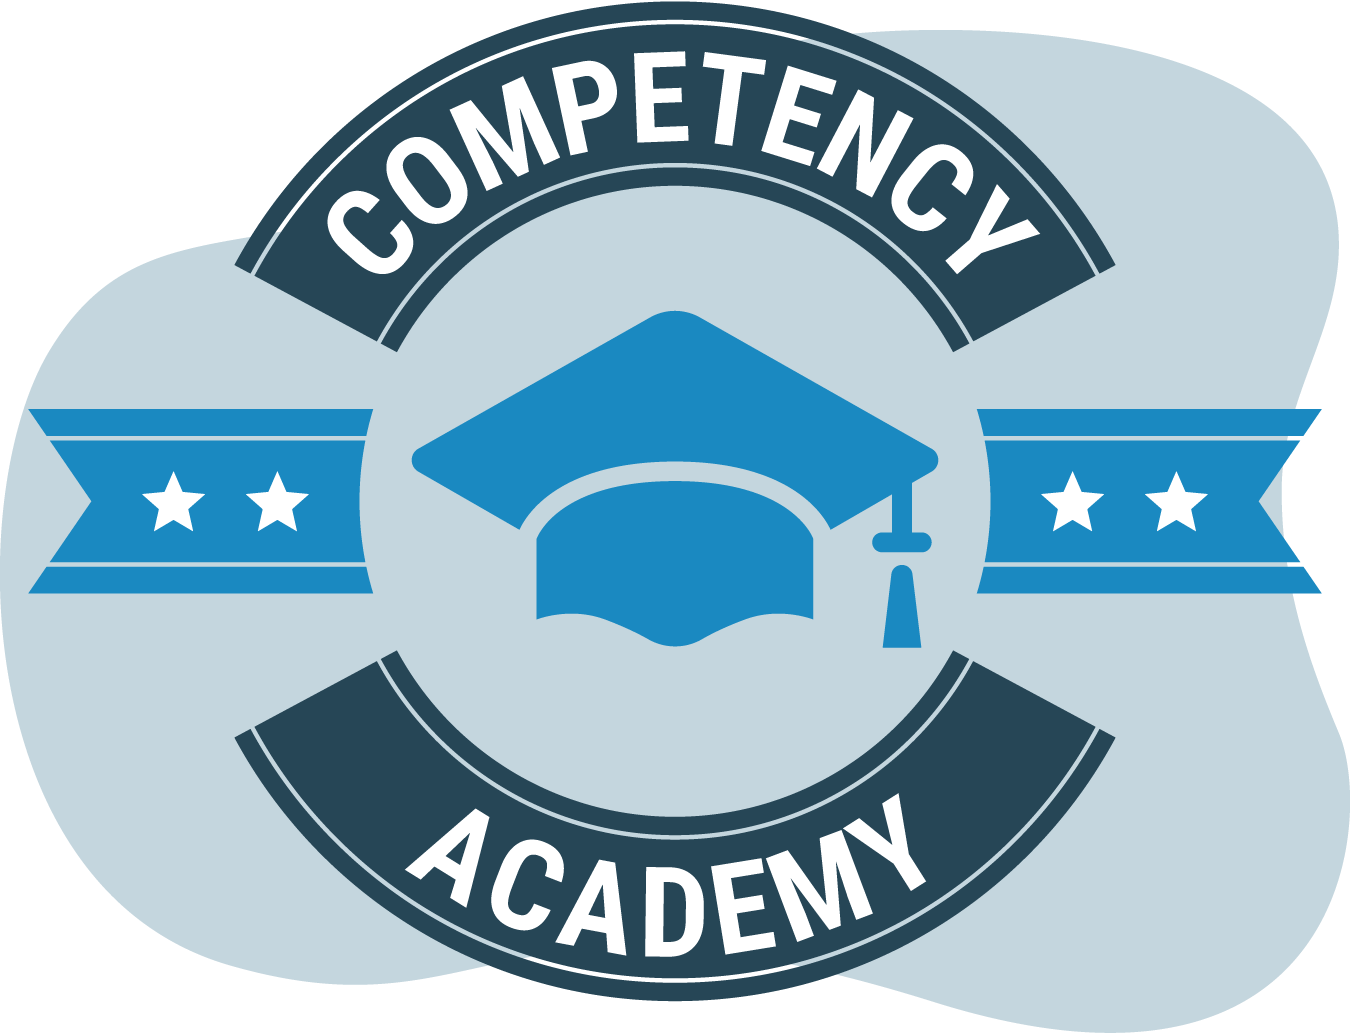 Competency Academy